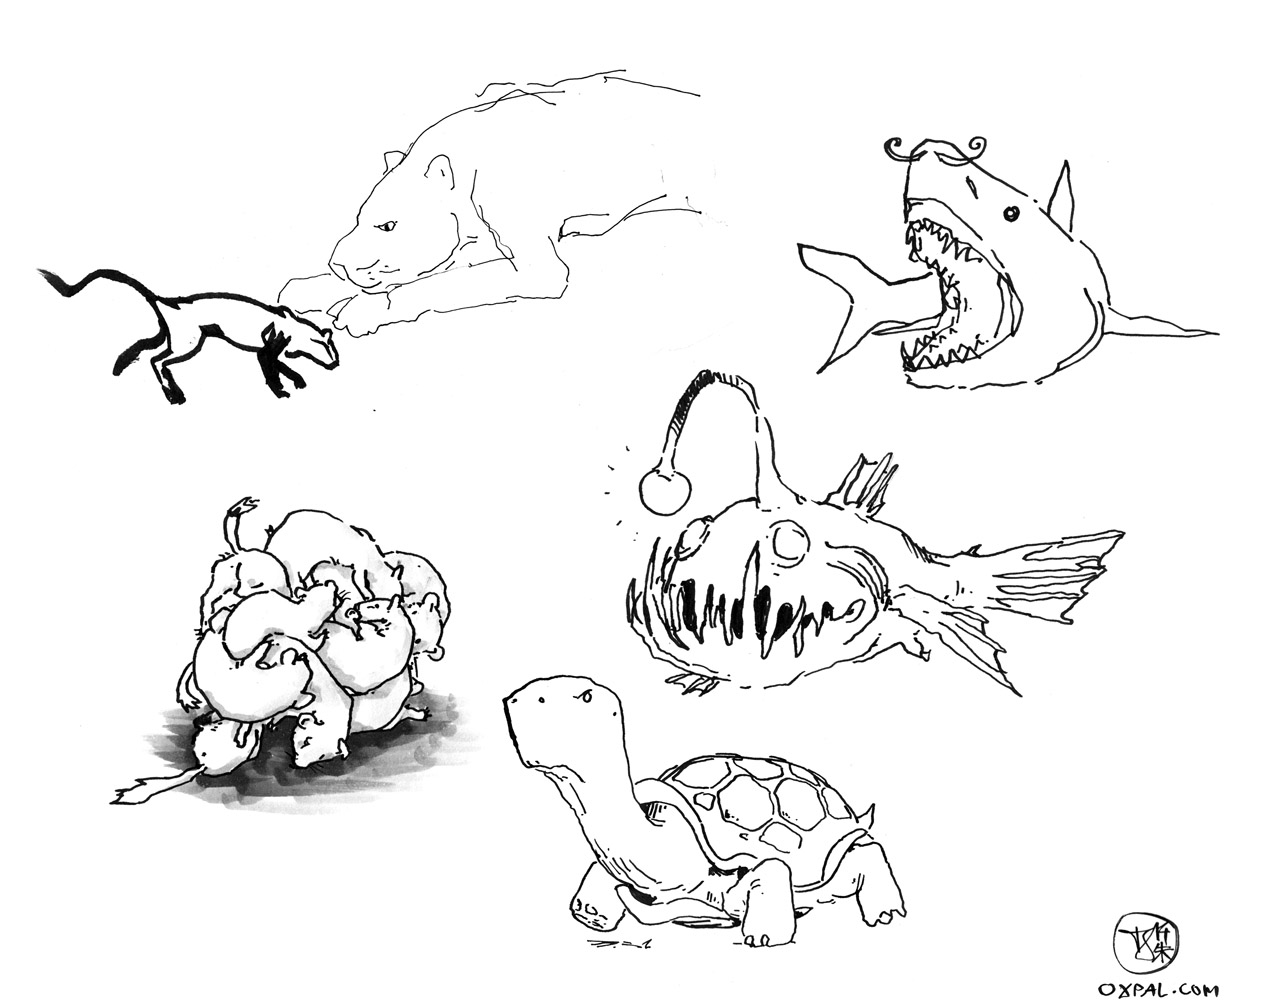 Combined animals drawings